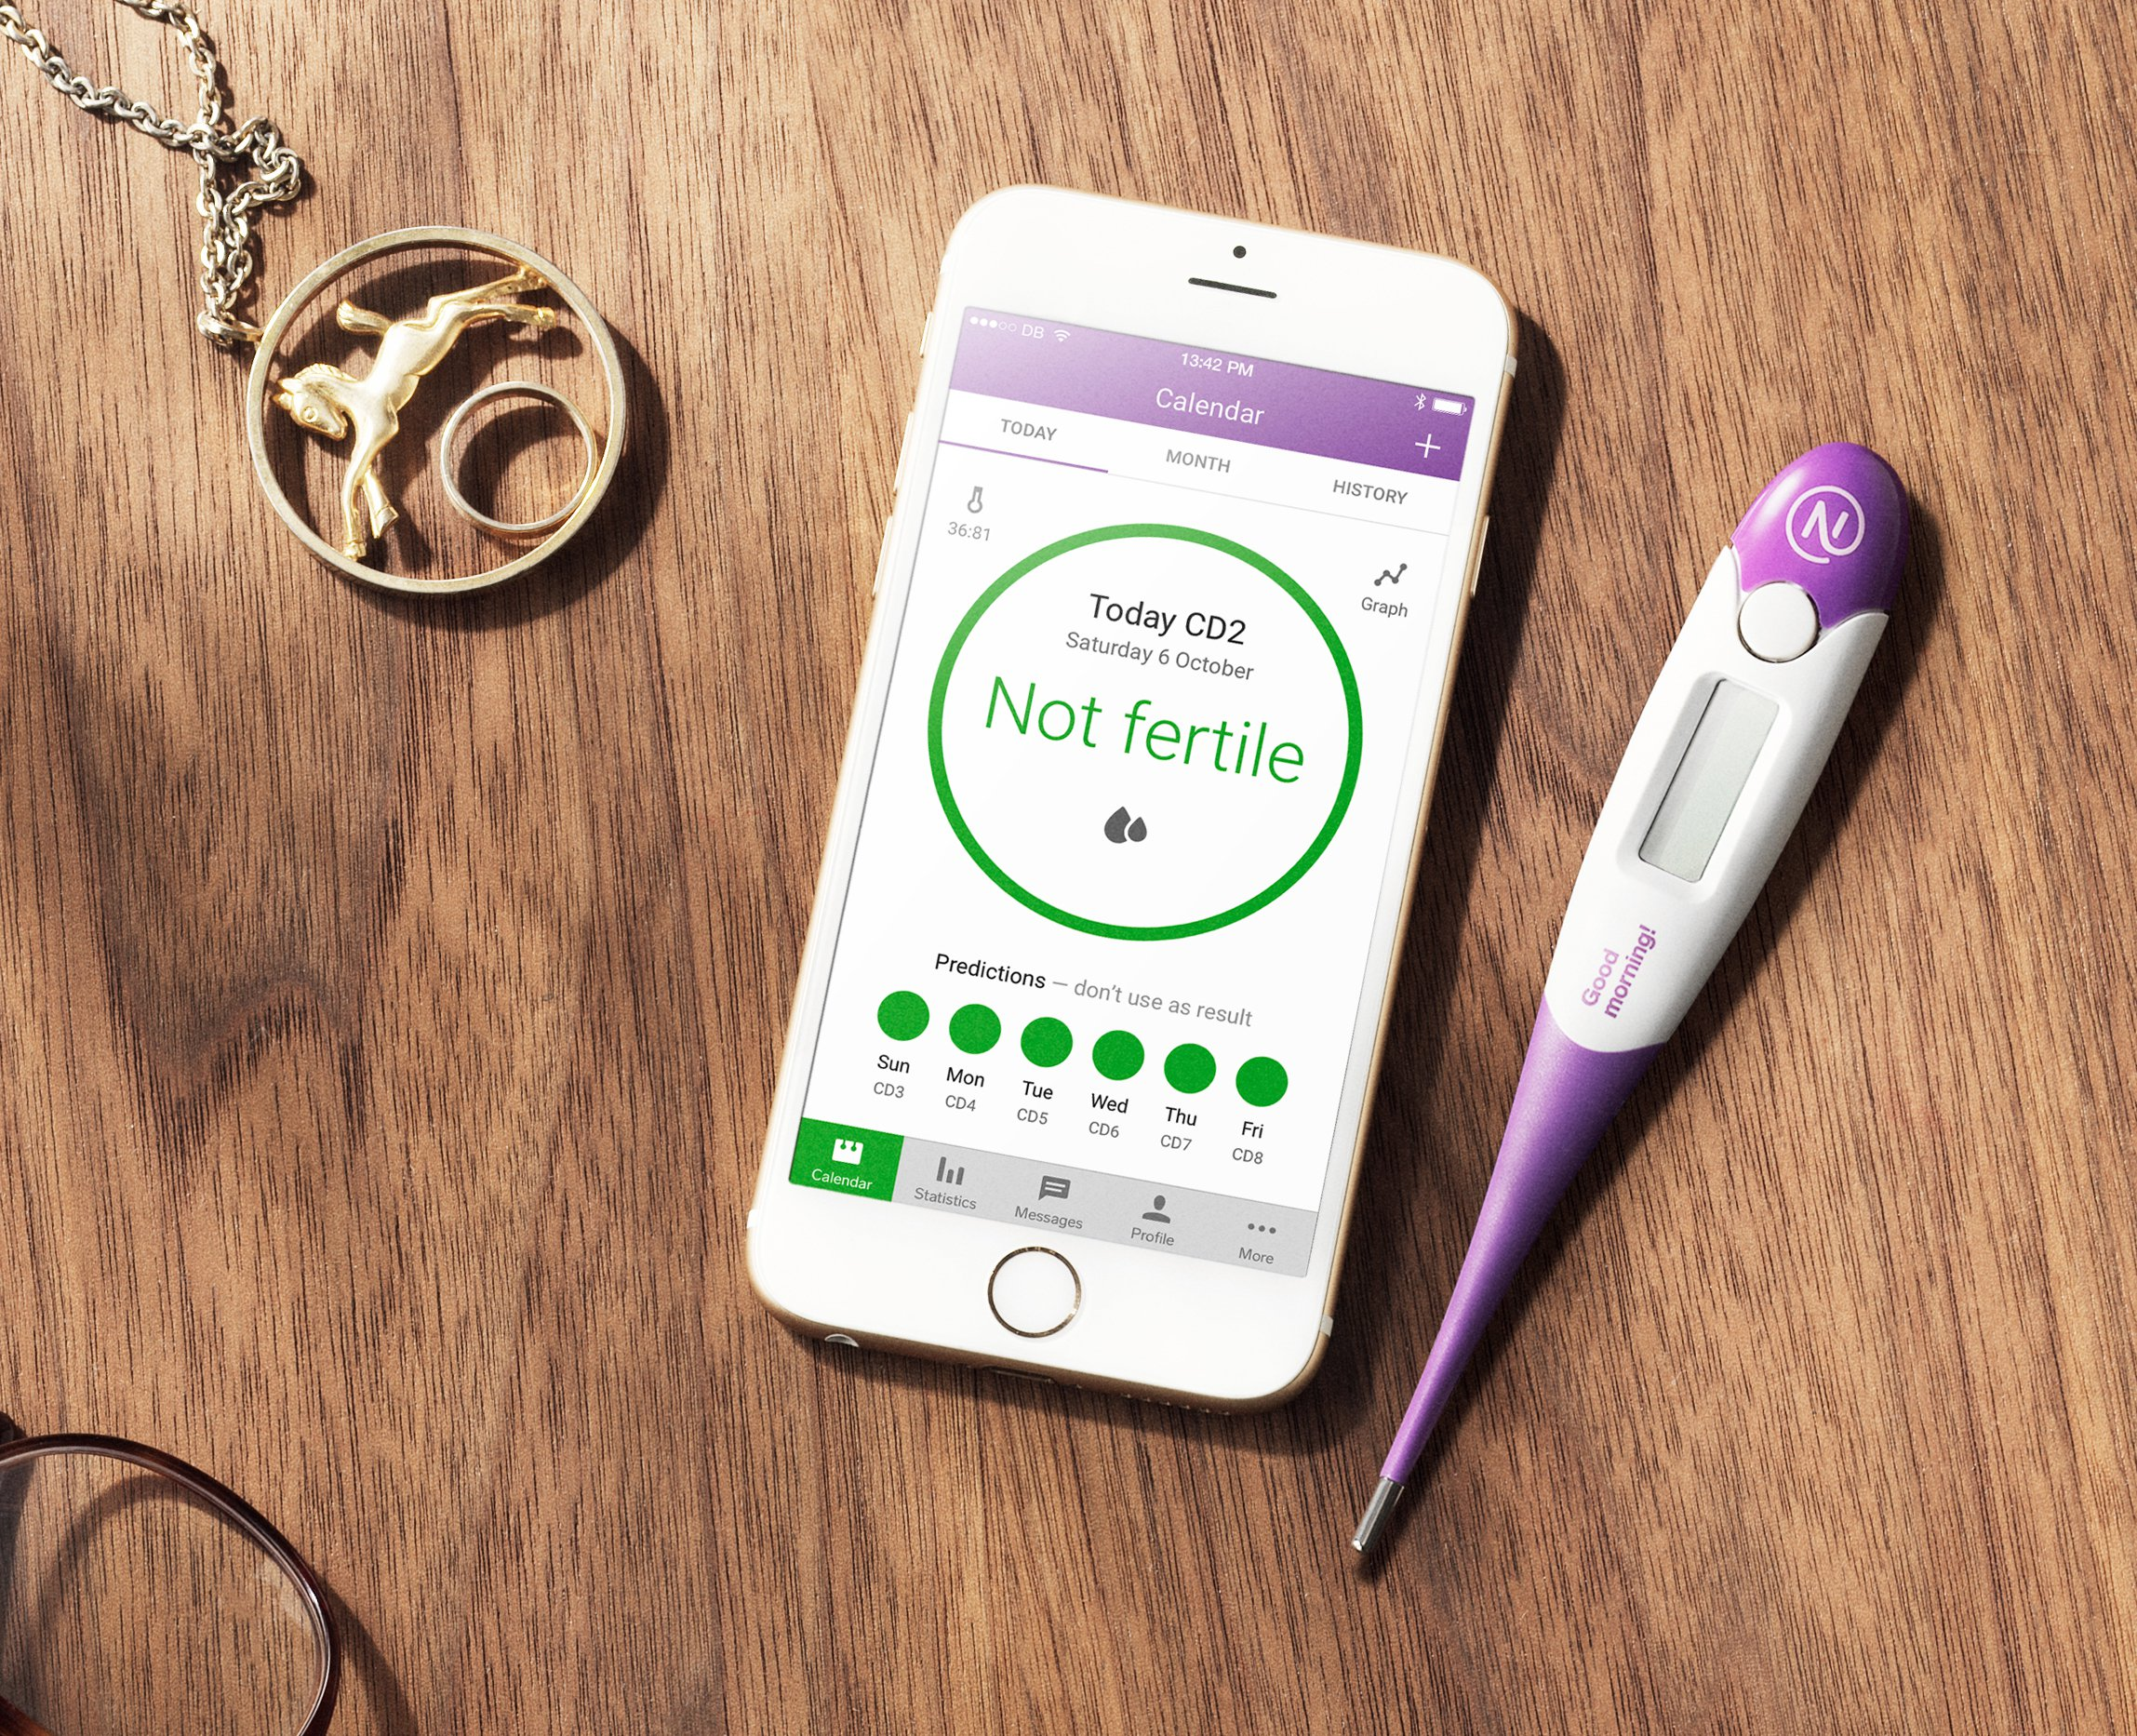 Fertility app under investigation after claiming it is 'highly accurate'